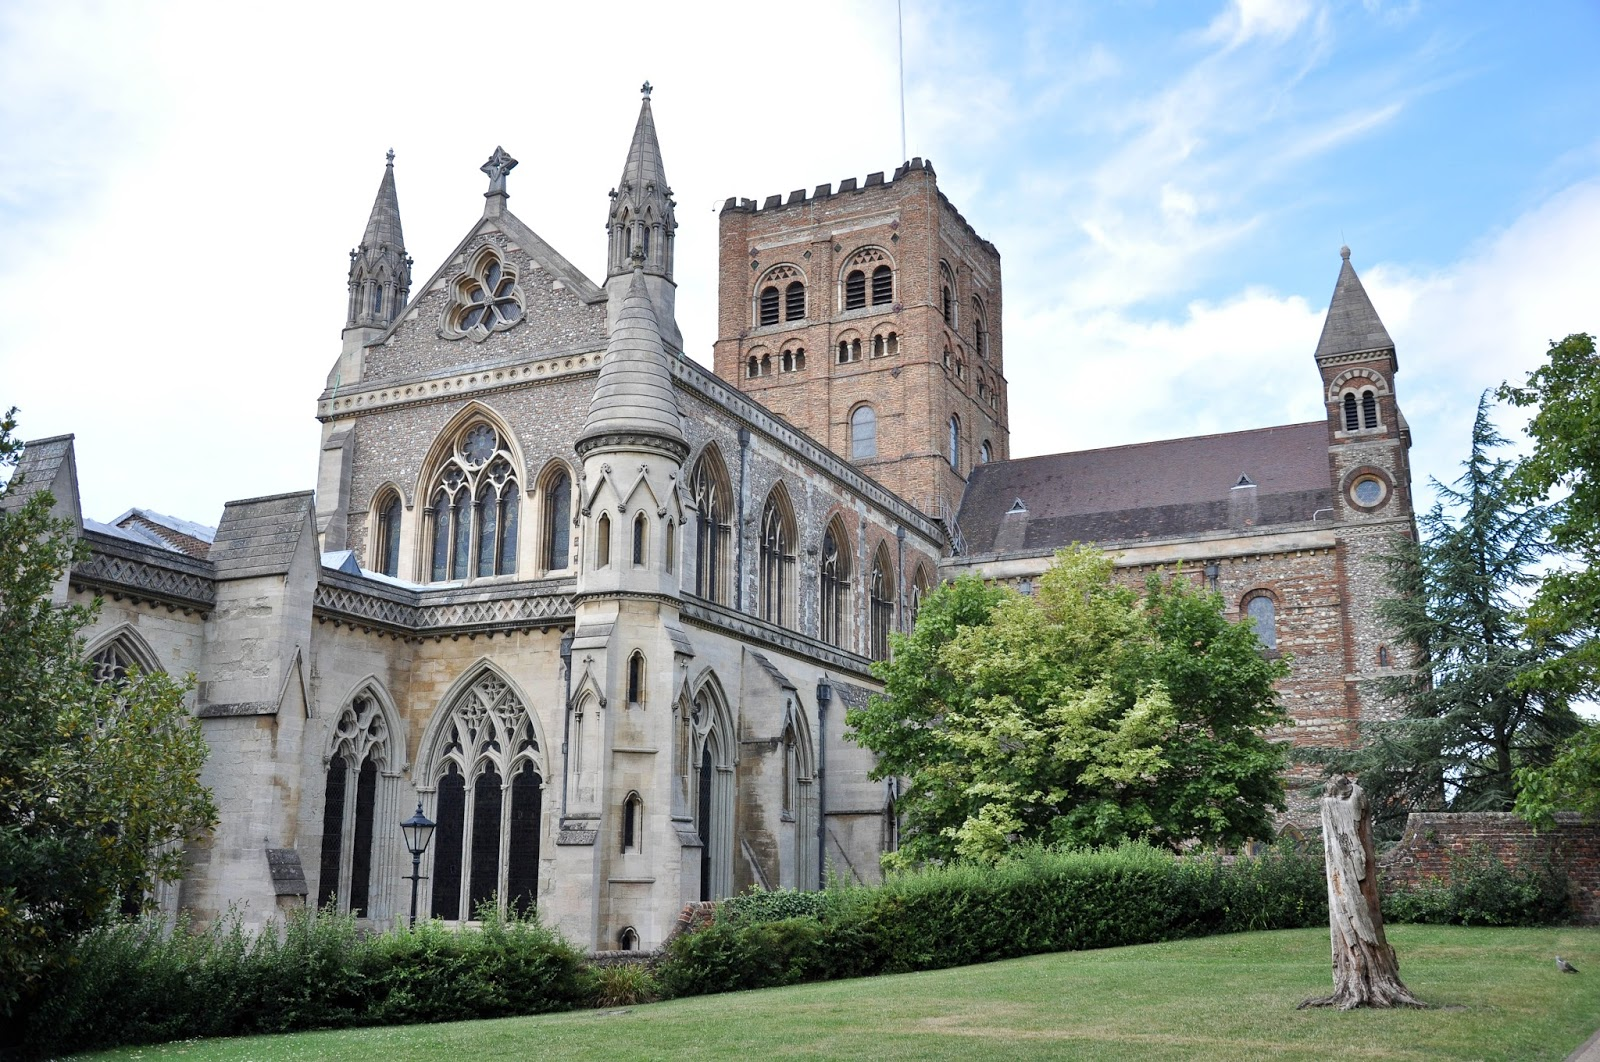 St. Albans Cathedral, St. Albans, Herts, England